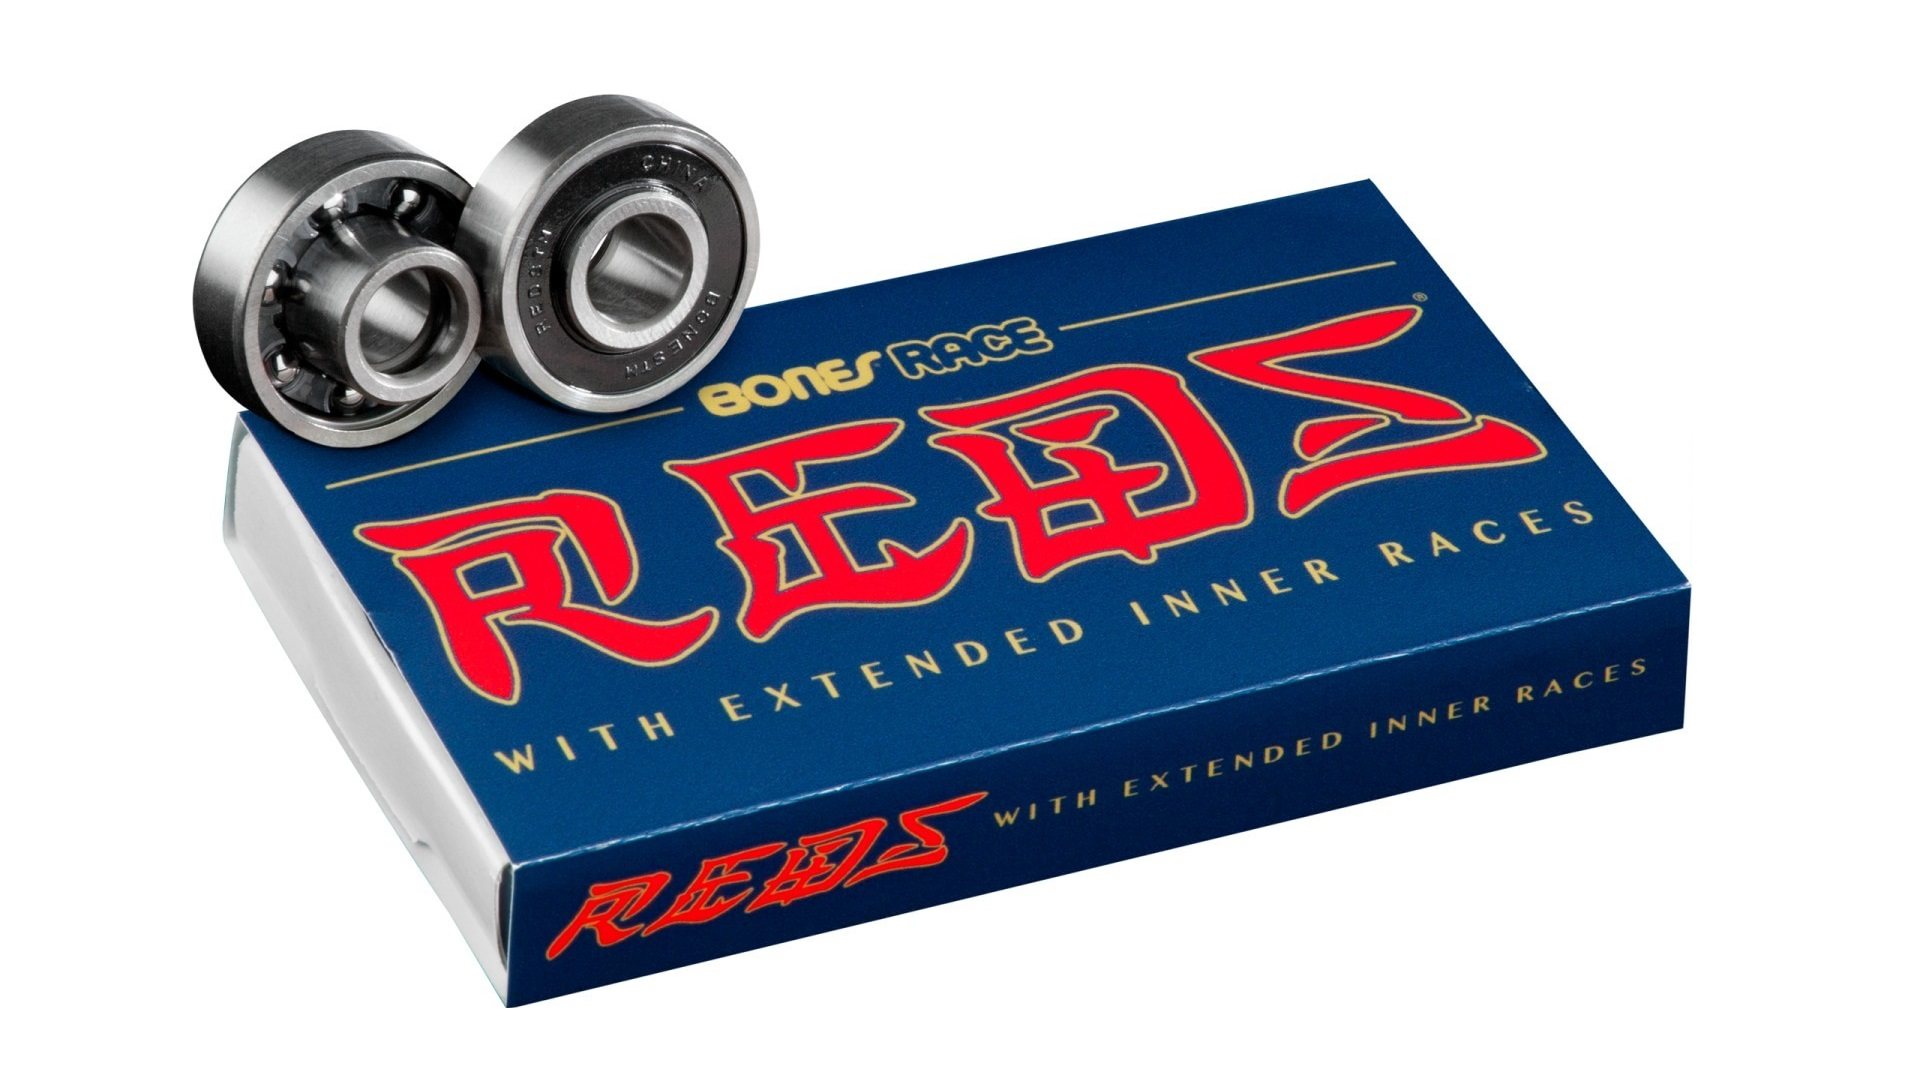 Bones Bearings Ložiska Bones Race Reds 8 ks